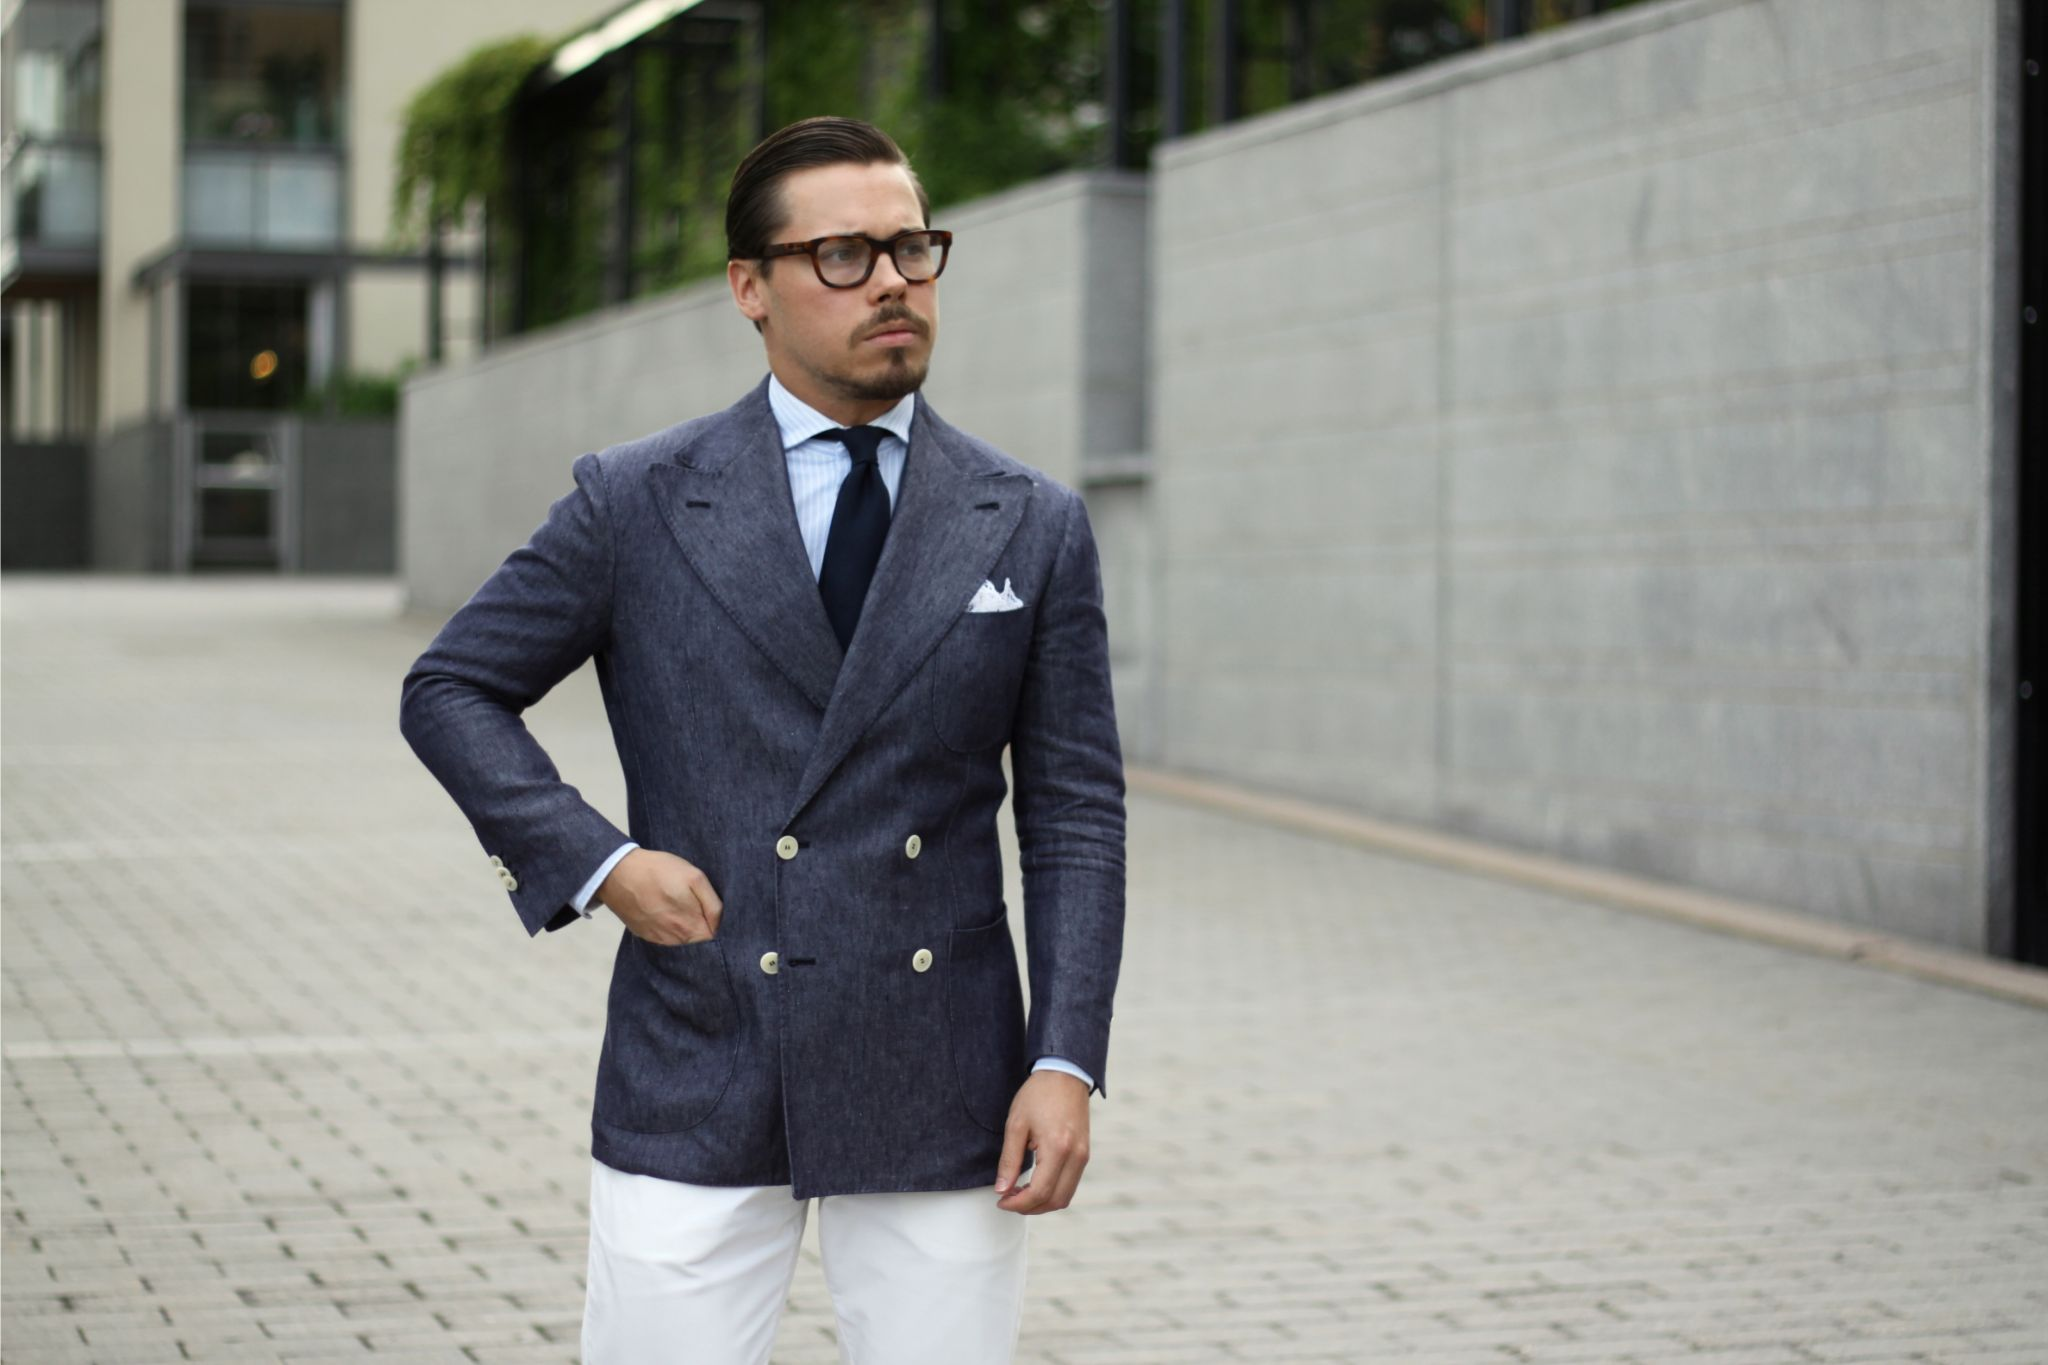 Indigo linen blazer with blue grenadine tie